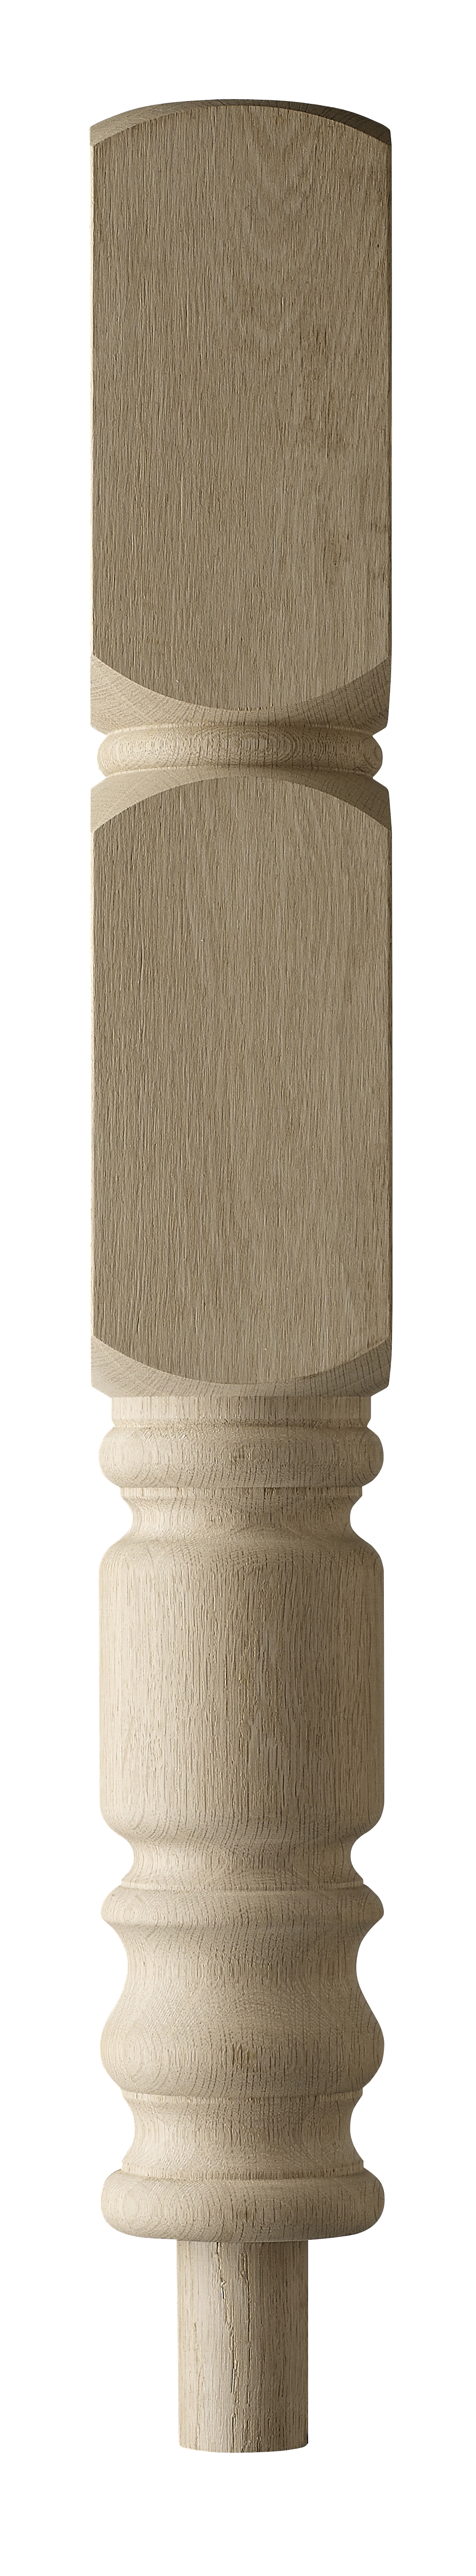 1 Oak Eton Intermediate Newel